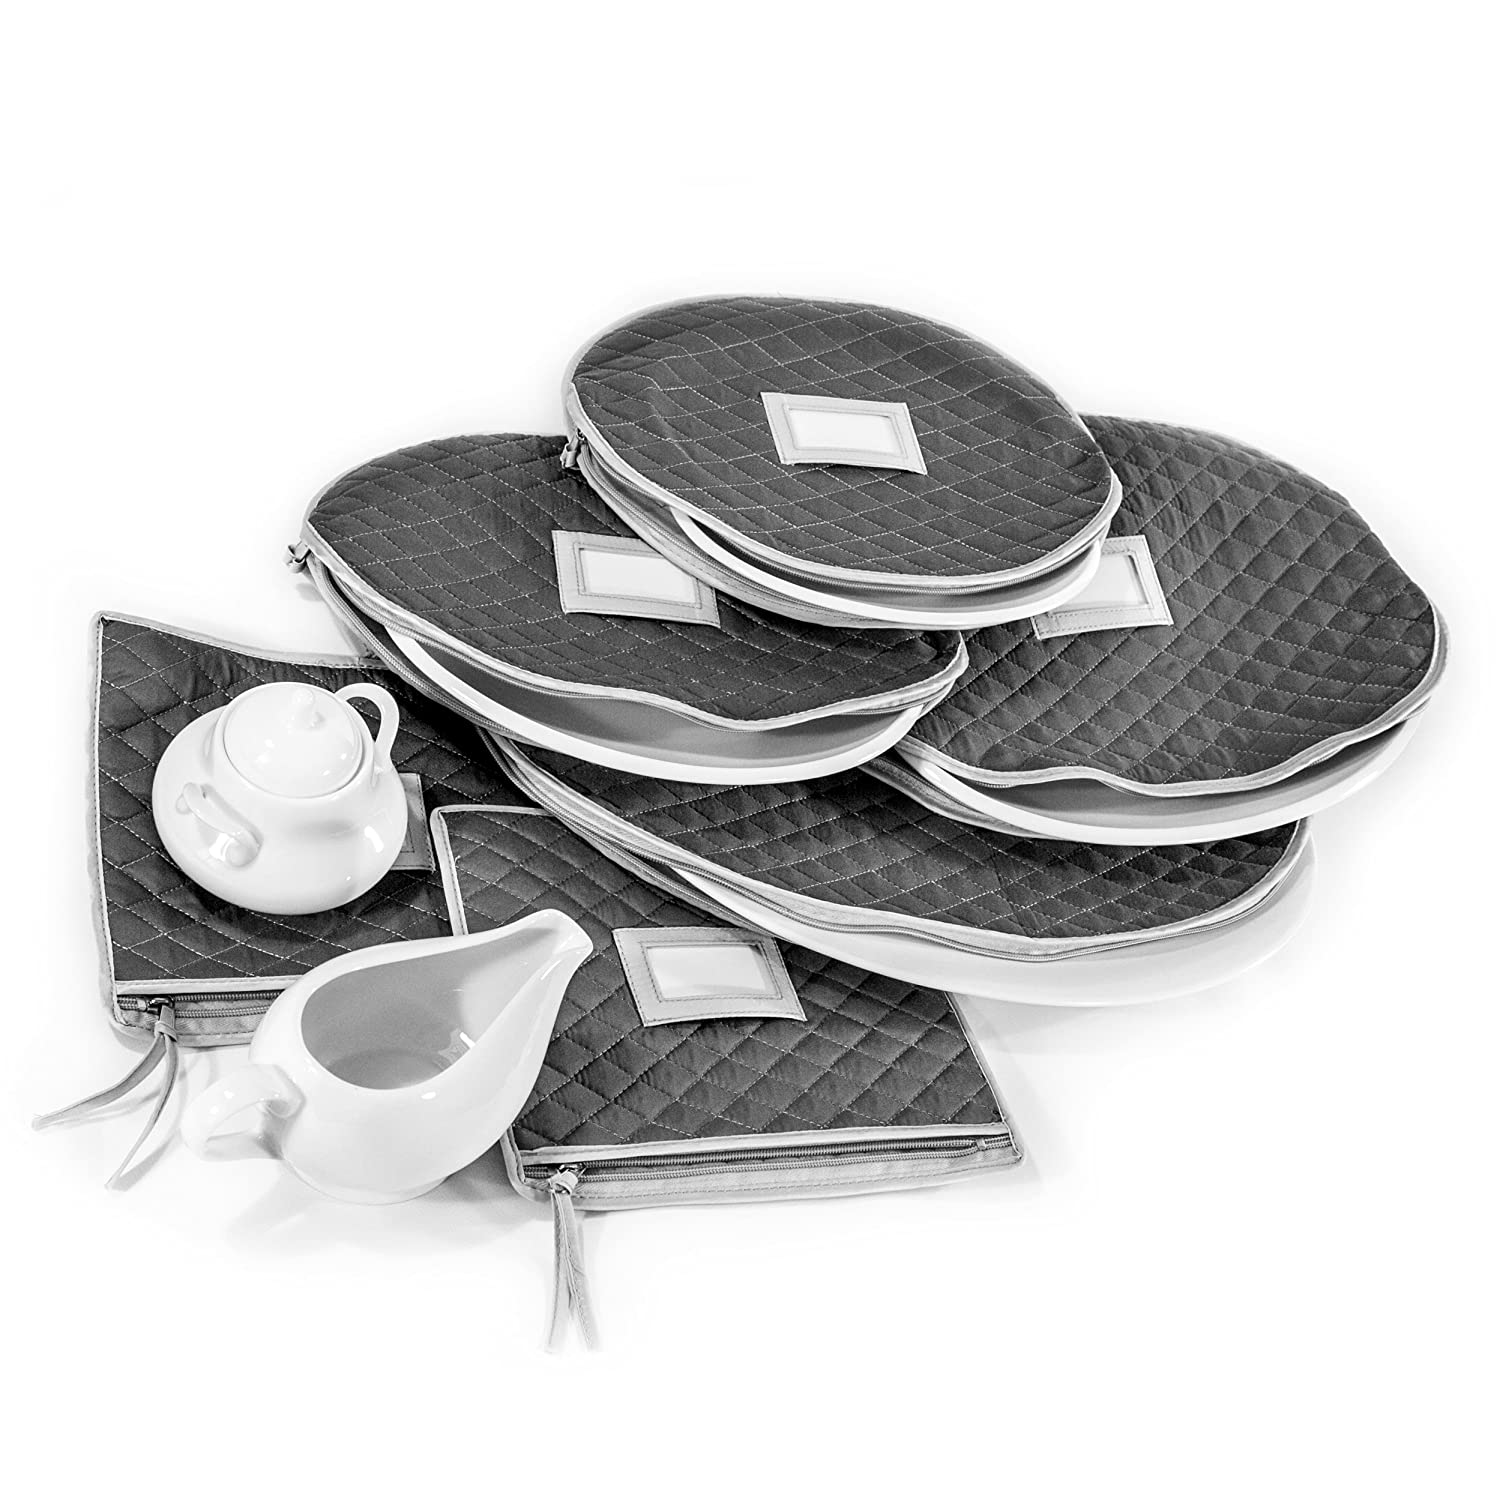 Quilted Cases for Fine China Accessories Storage - Set of 6 - Gray